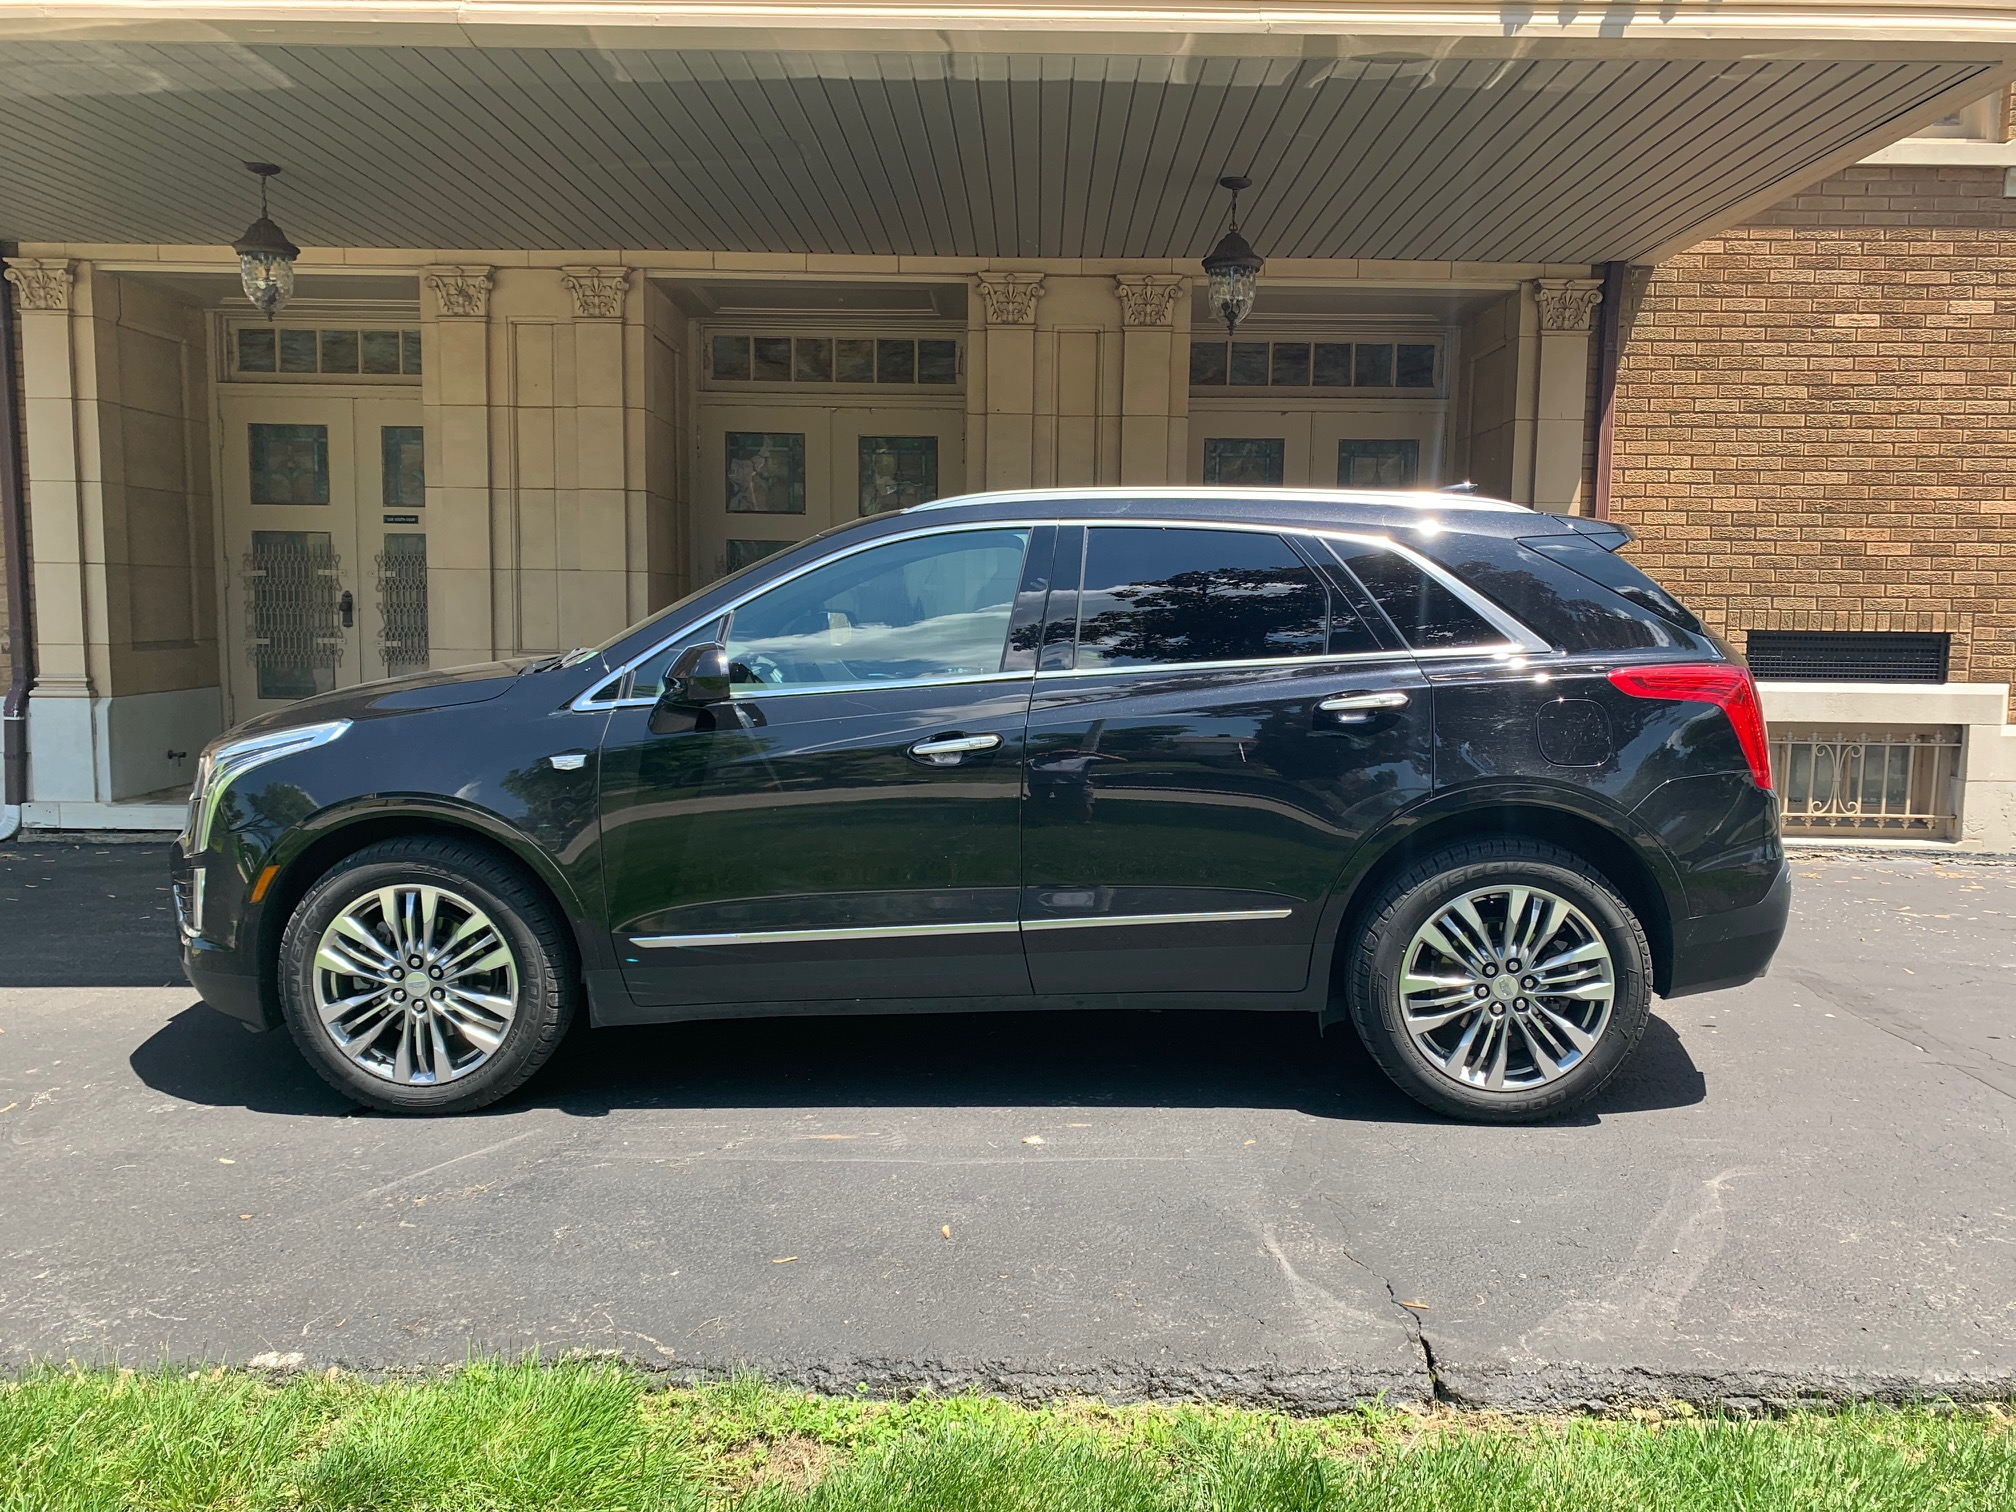 2017 Cadillac XT5 SUV - Used SUV For Sale